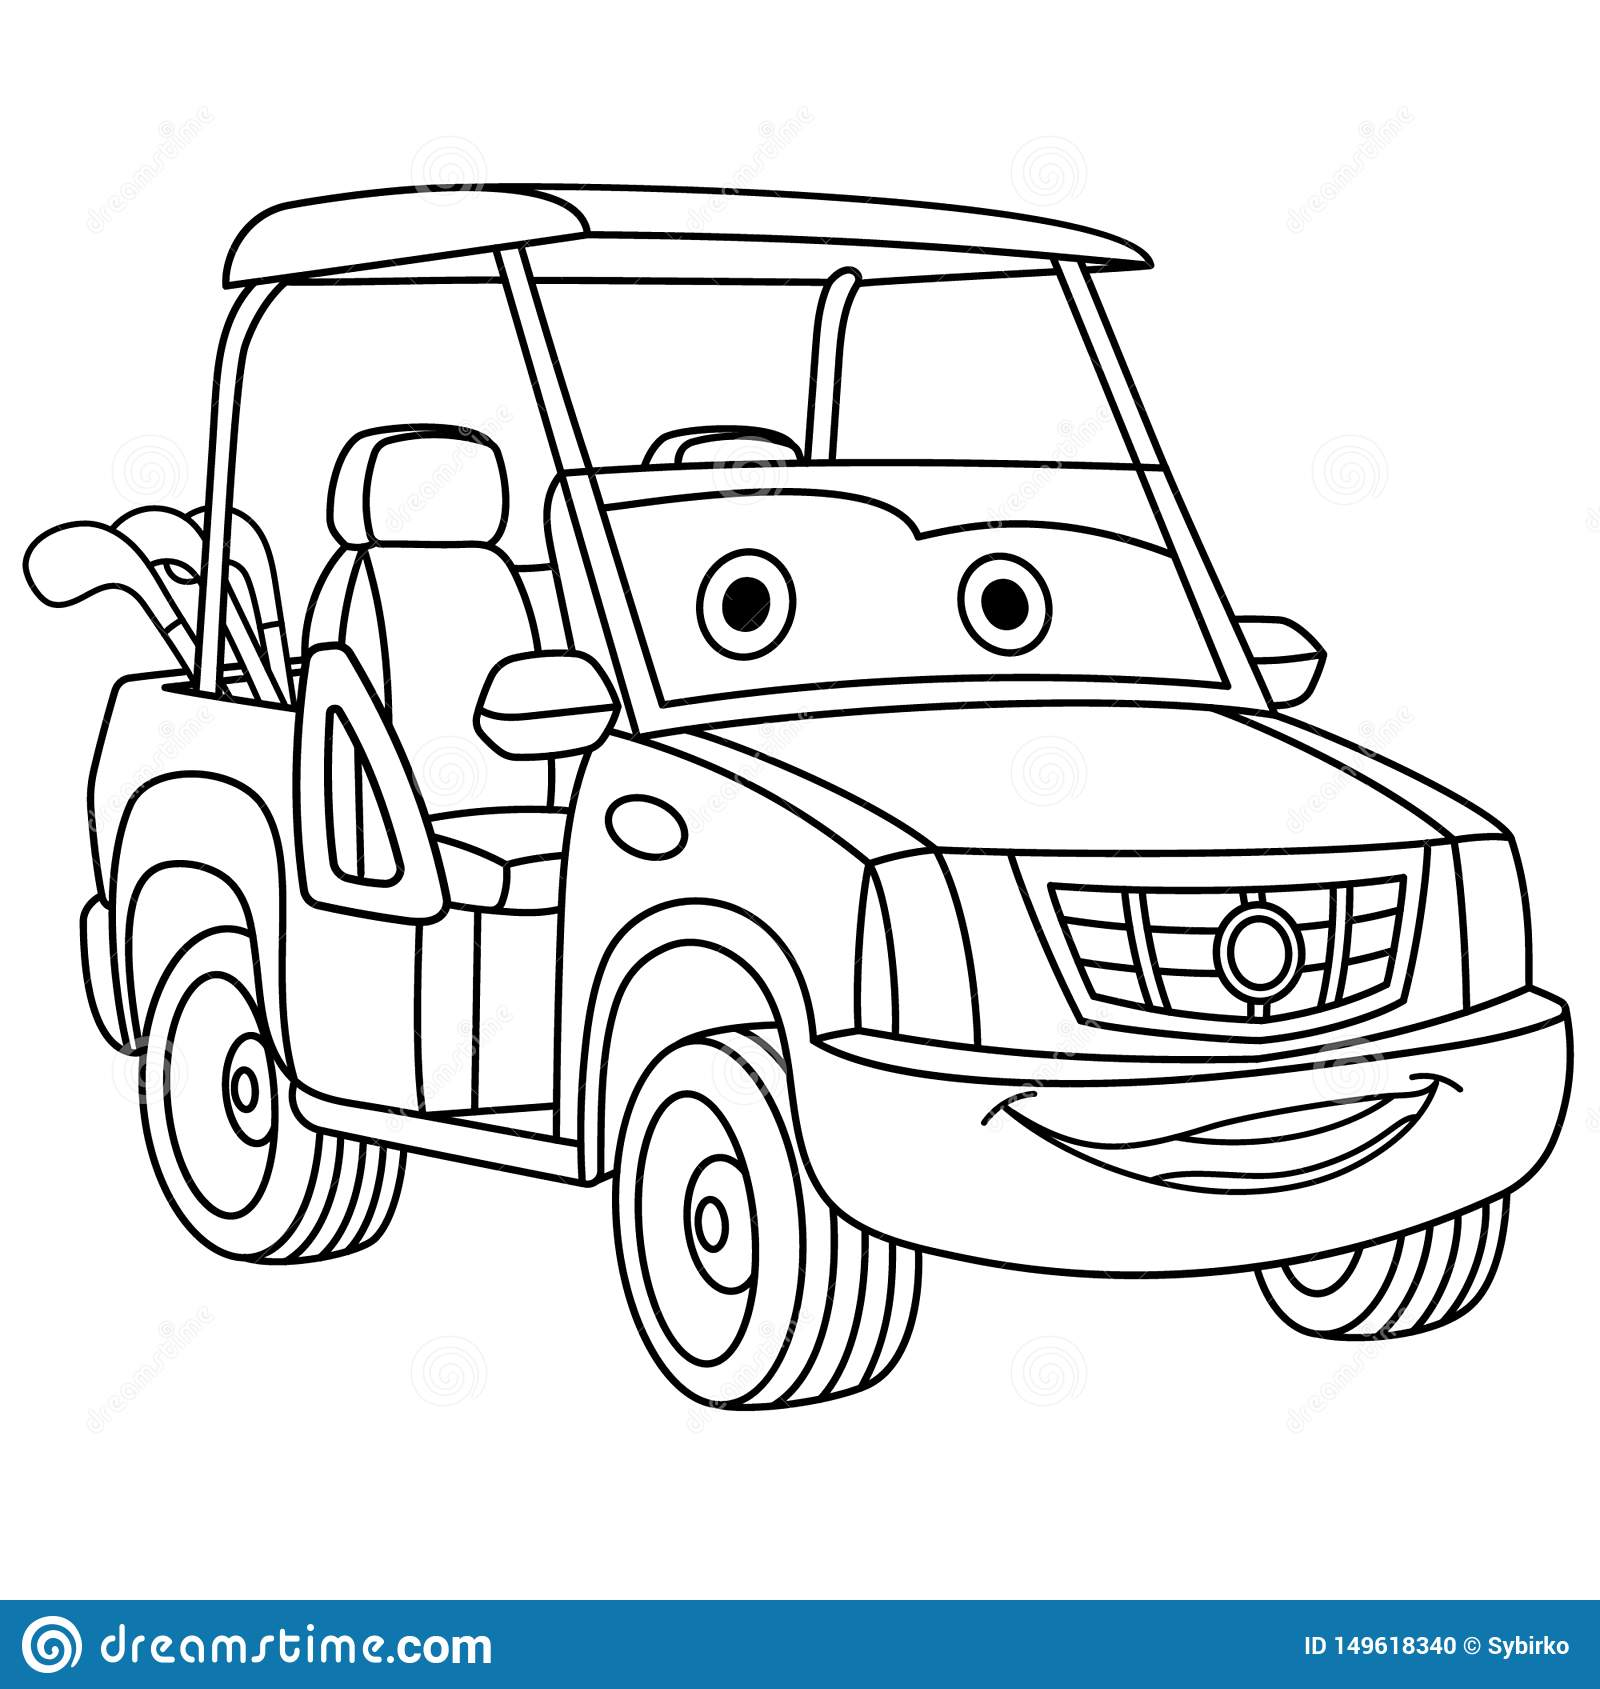 Coloring Page With Golf Car Stock Vector Illustration Of